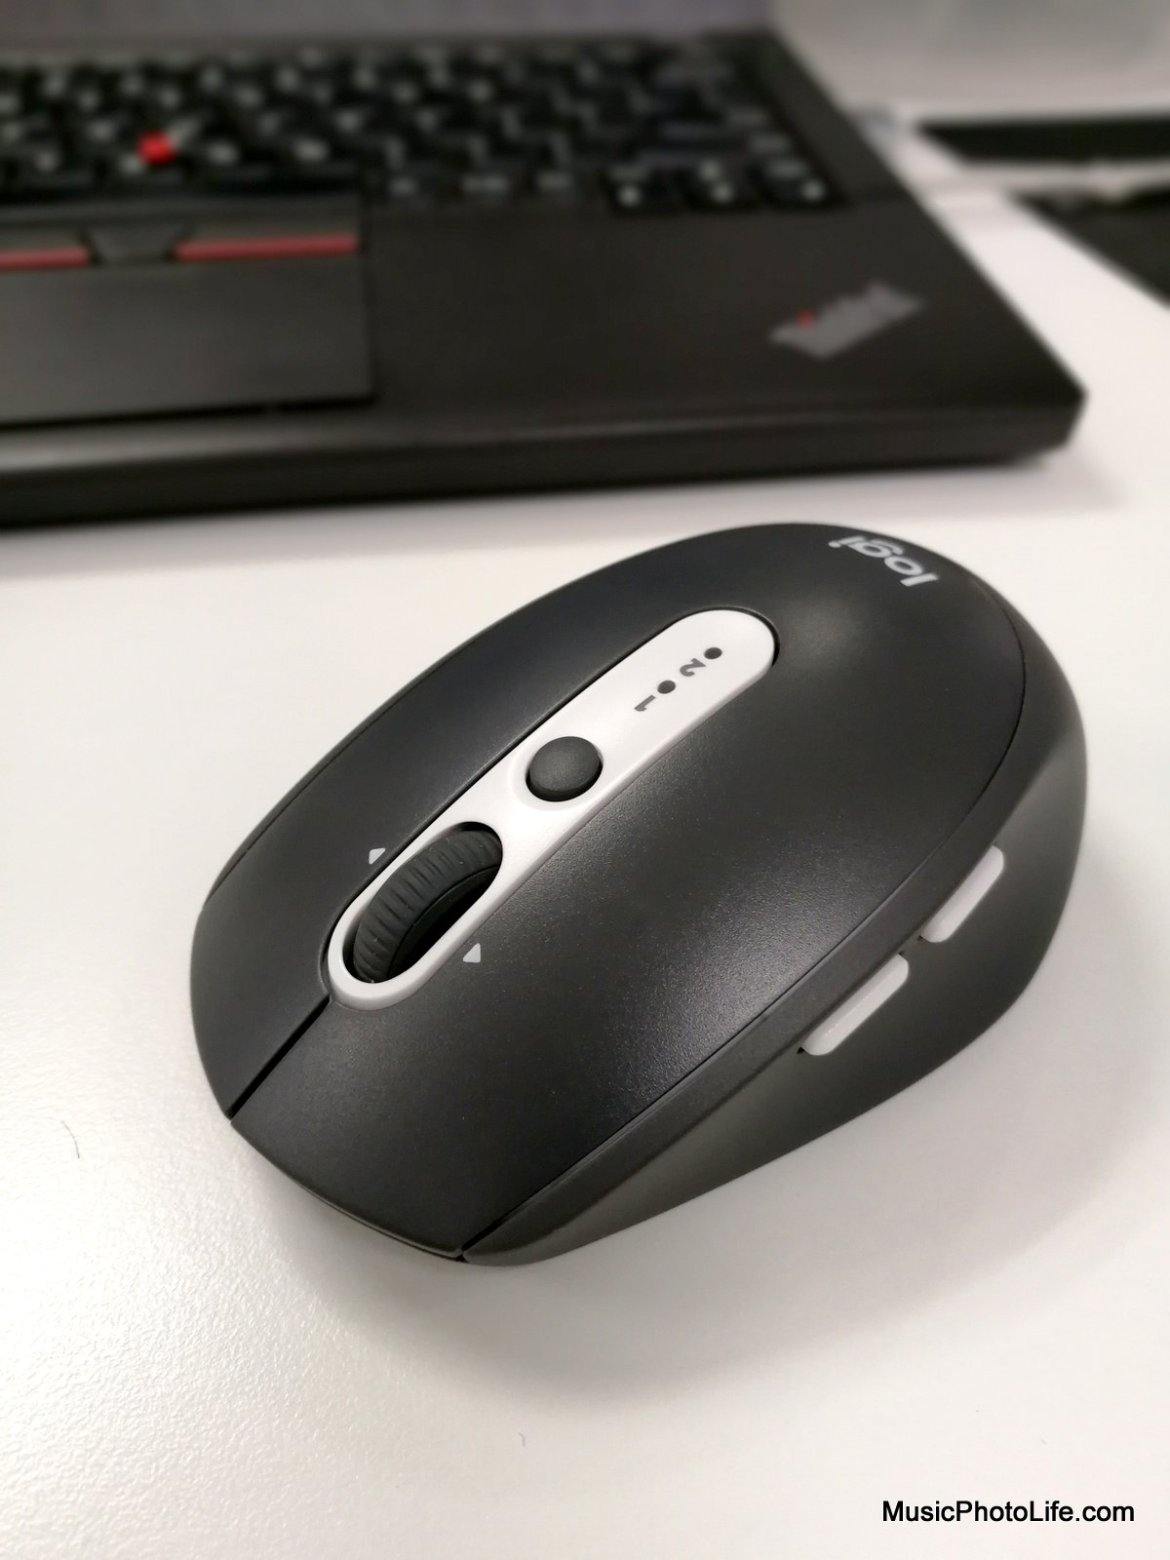 Logitech M585 Multi-Device Wireless Mouse review, Lazada exclusive online sale